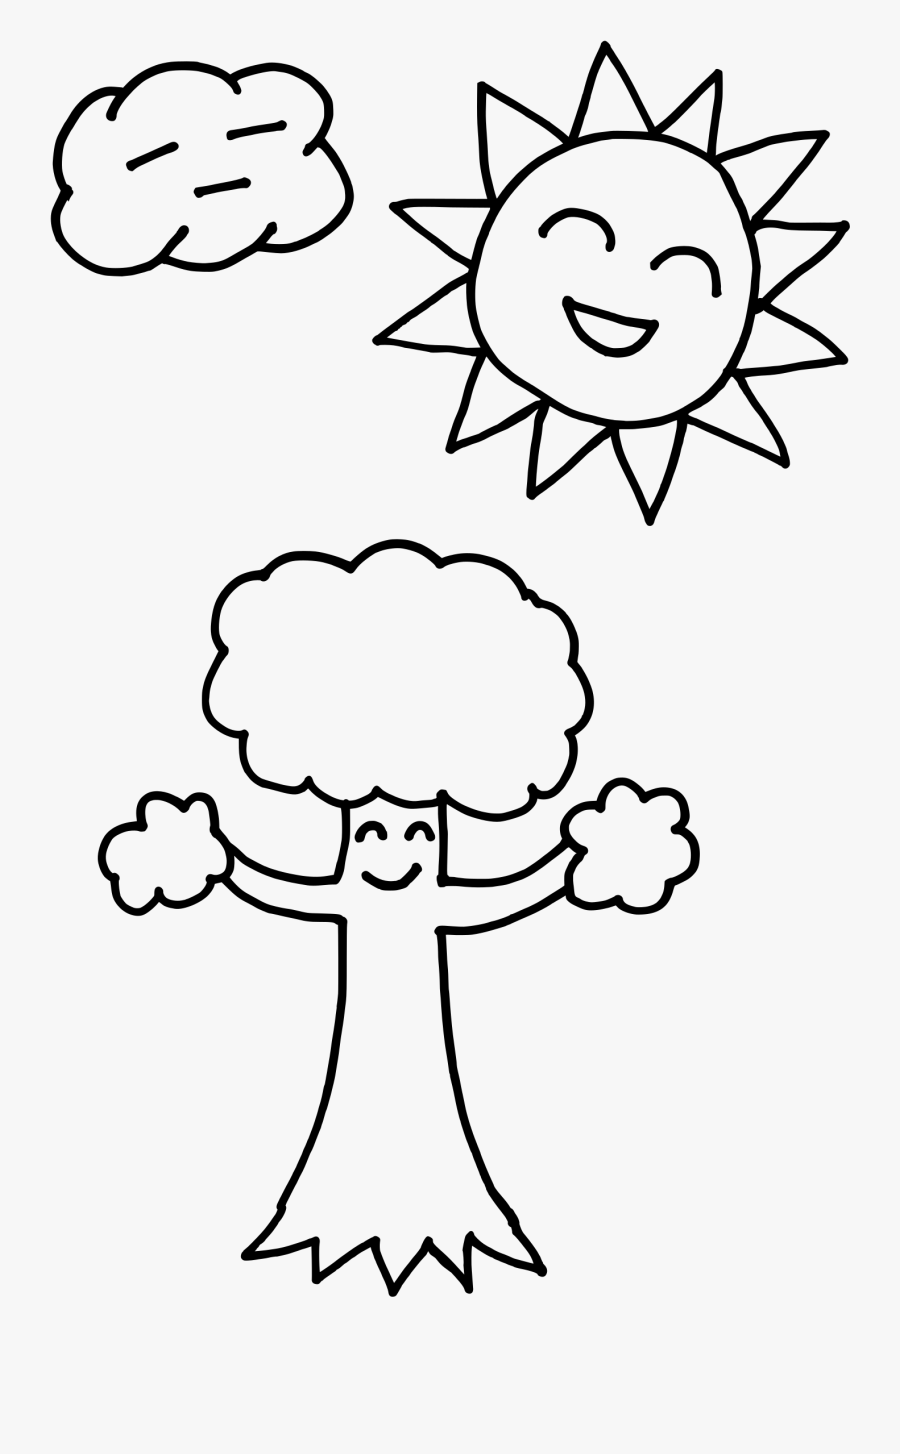 Happy Sun Drawing At - Coloring Pages Of Trees And Sun, Transparent Clipart